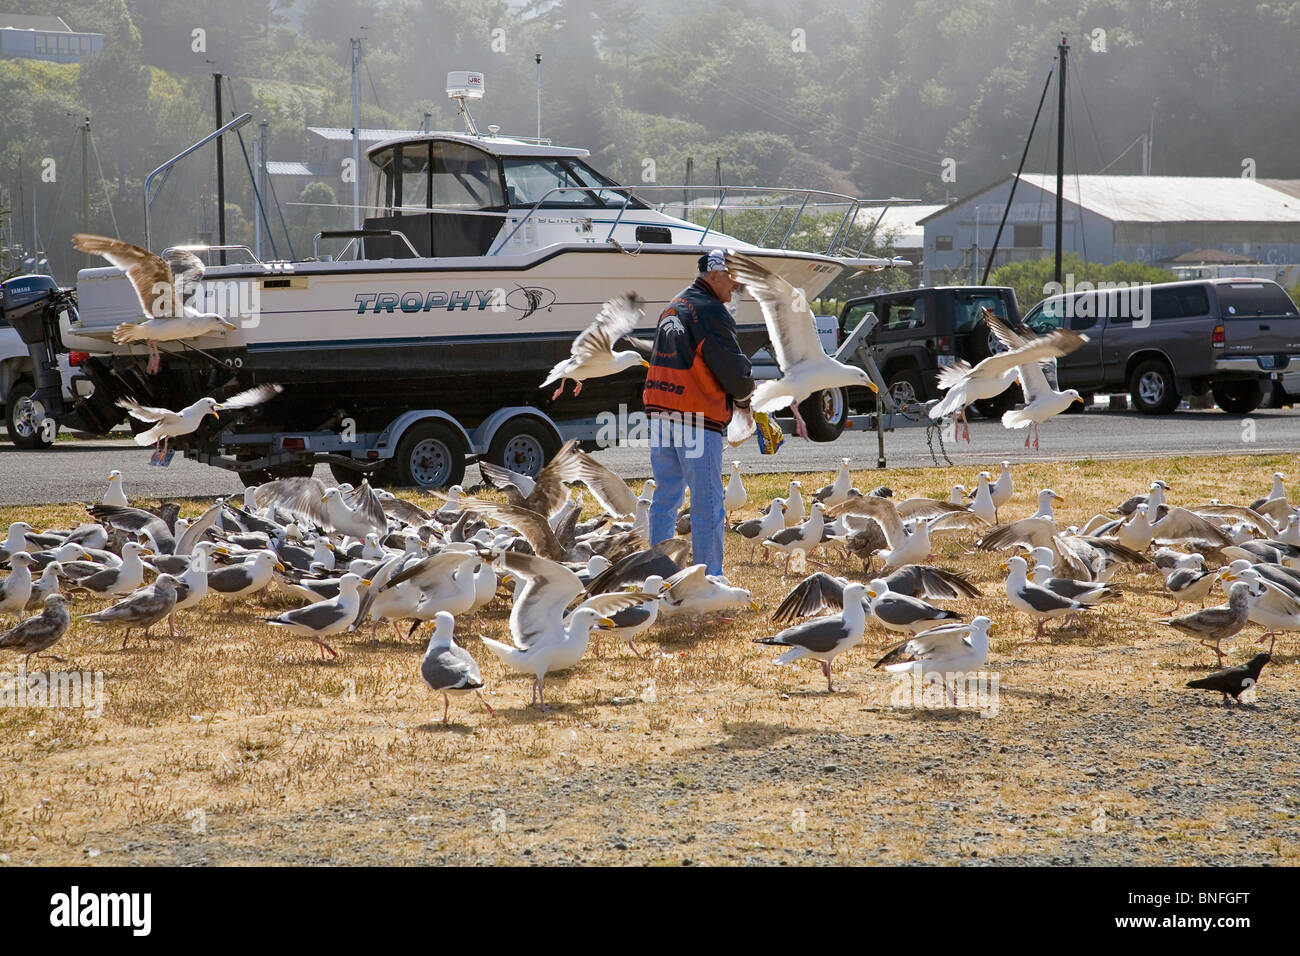 Boats in the harbor of Brookings, Oregon, on the Oregon Pacific coast. - Stock Image